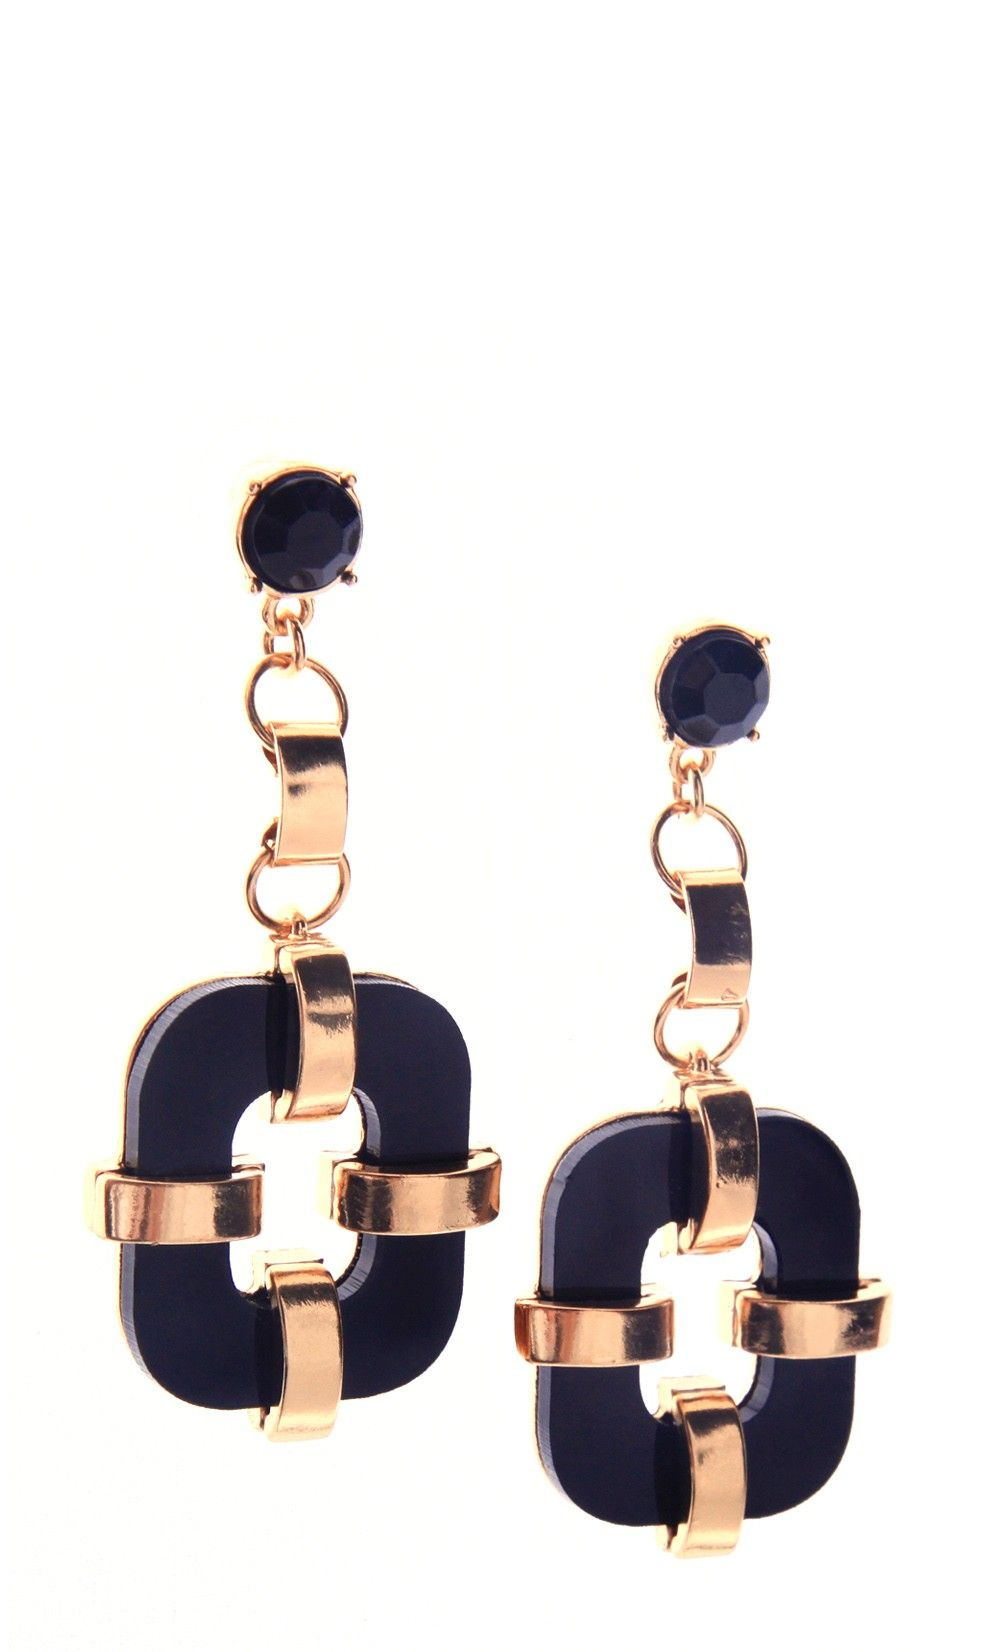 Keen Earrings - Werk It Trunk Line Coordinates with Effortless Neclklace For details/pricing/ coordinated clothing,  Go to http://www.mkcollab.com/profile/sharonwatkins